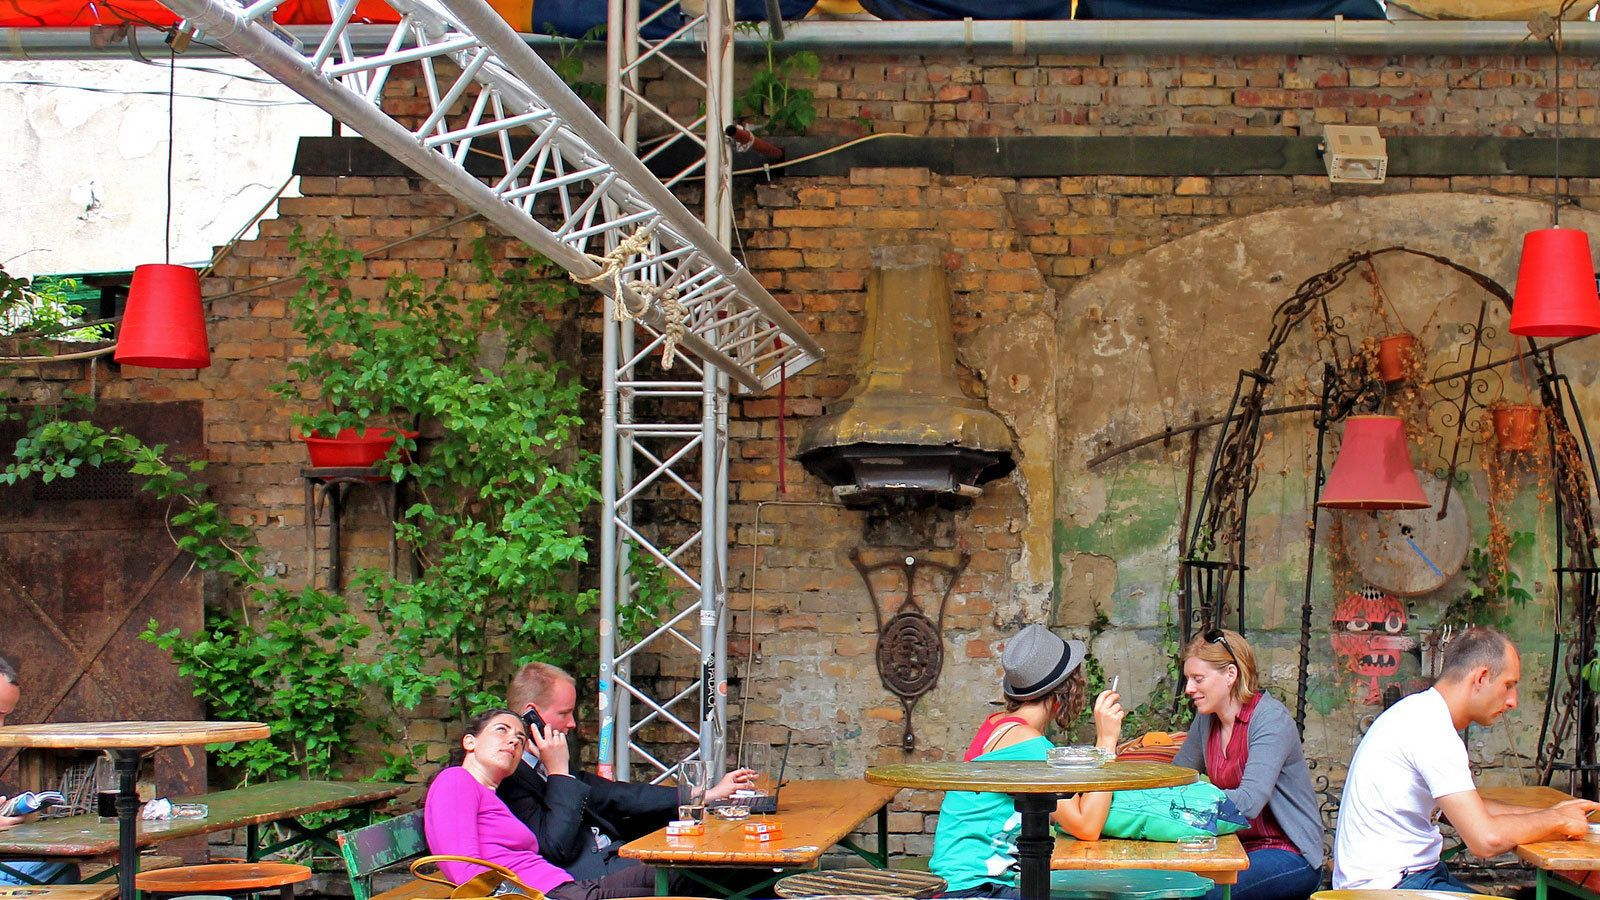 Outside dining at a cafe in Budapest